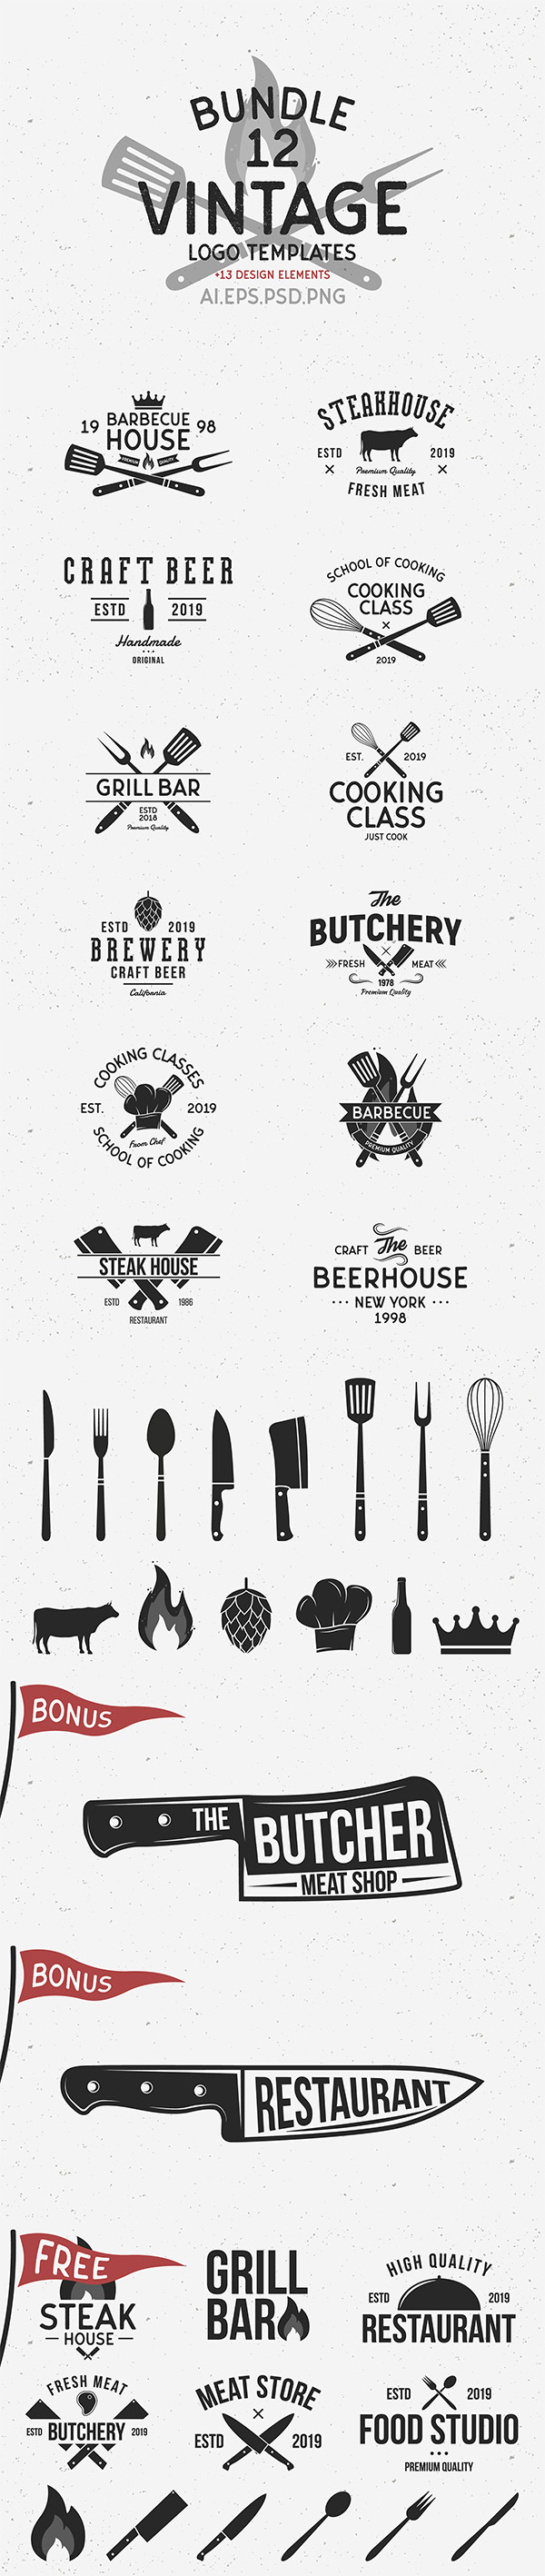 Freebies for 2019: Free Vintage Logo Templates and 6 Free logos